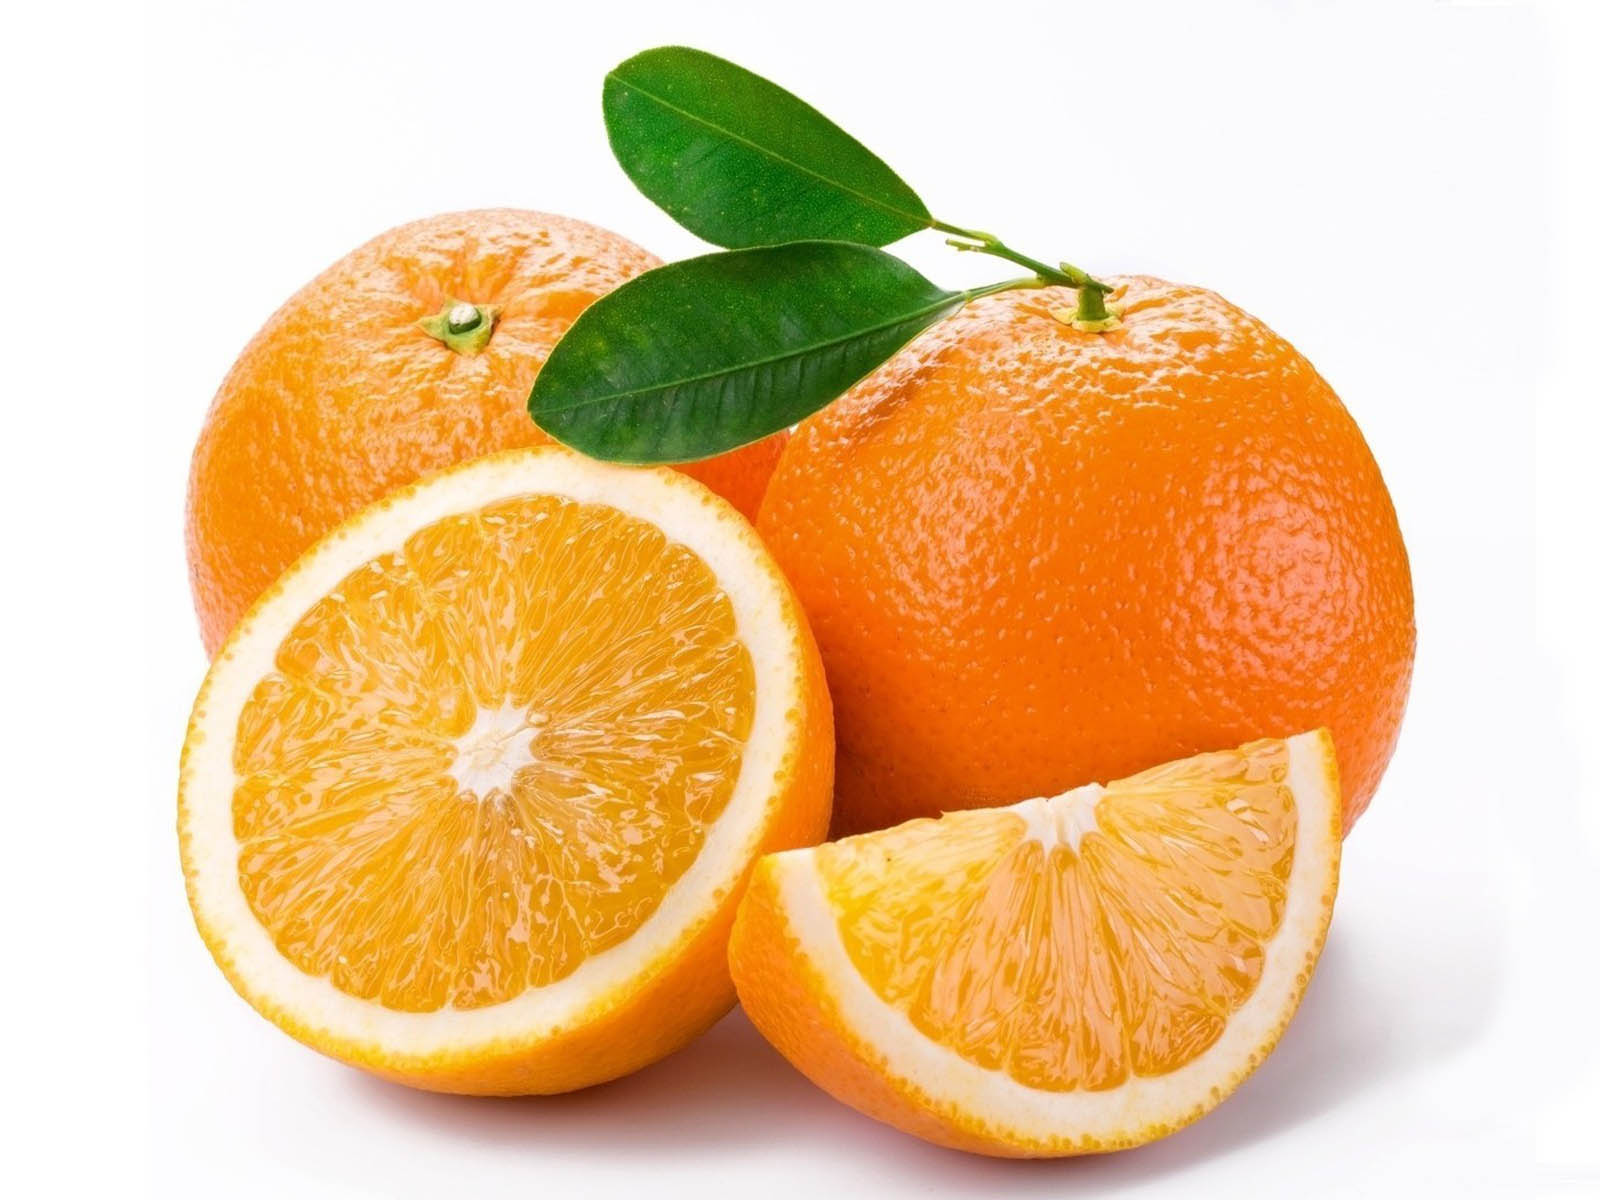 Orange is tropical to subtropical, green tree growing in height from 5 to 8 meters. It gives fruits that have diameter of approximately 8 inches and ...